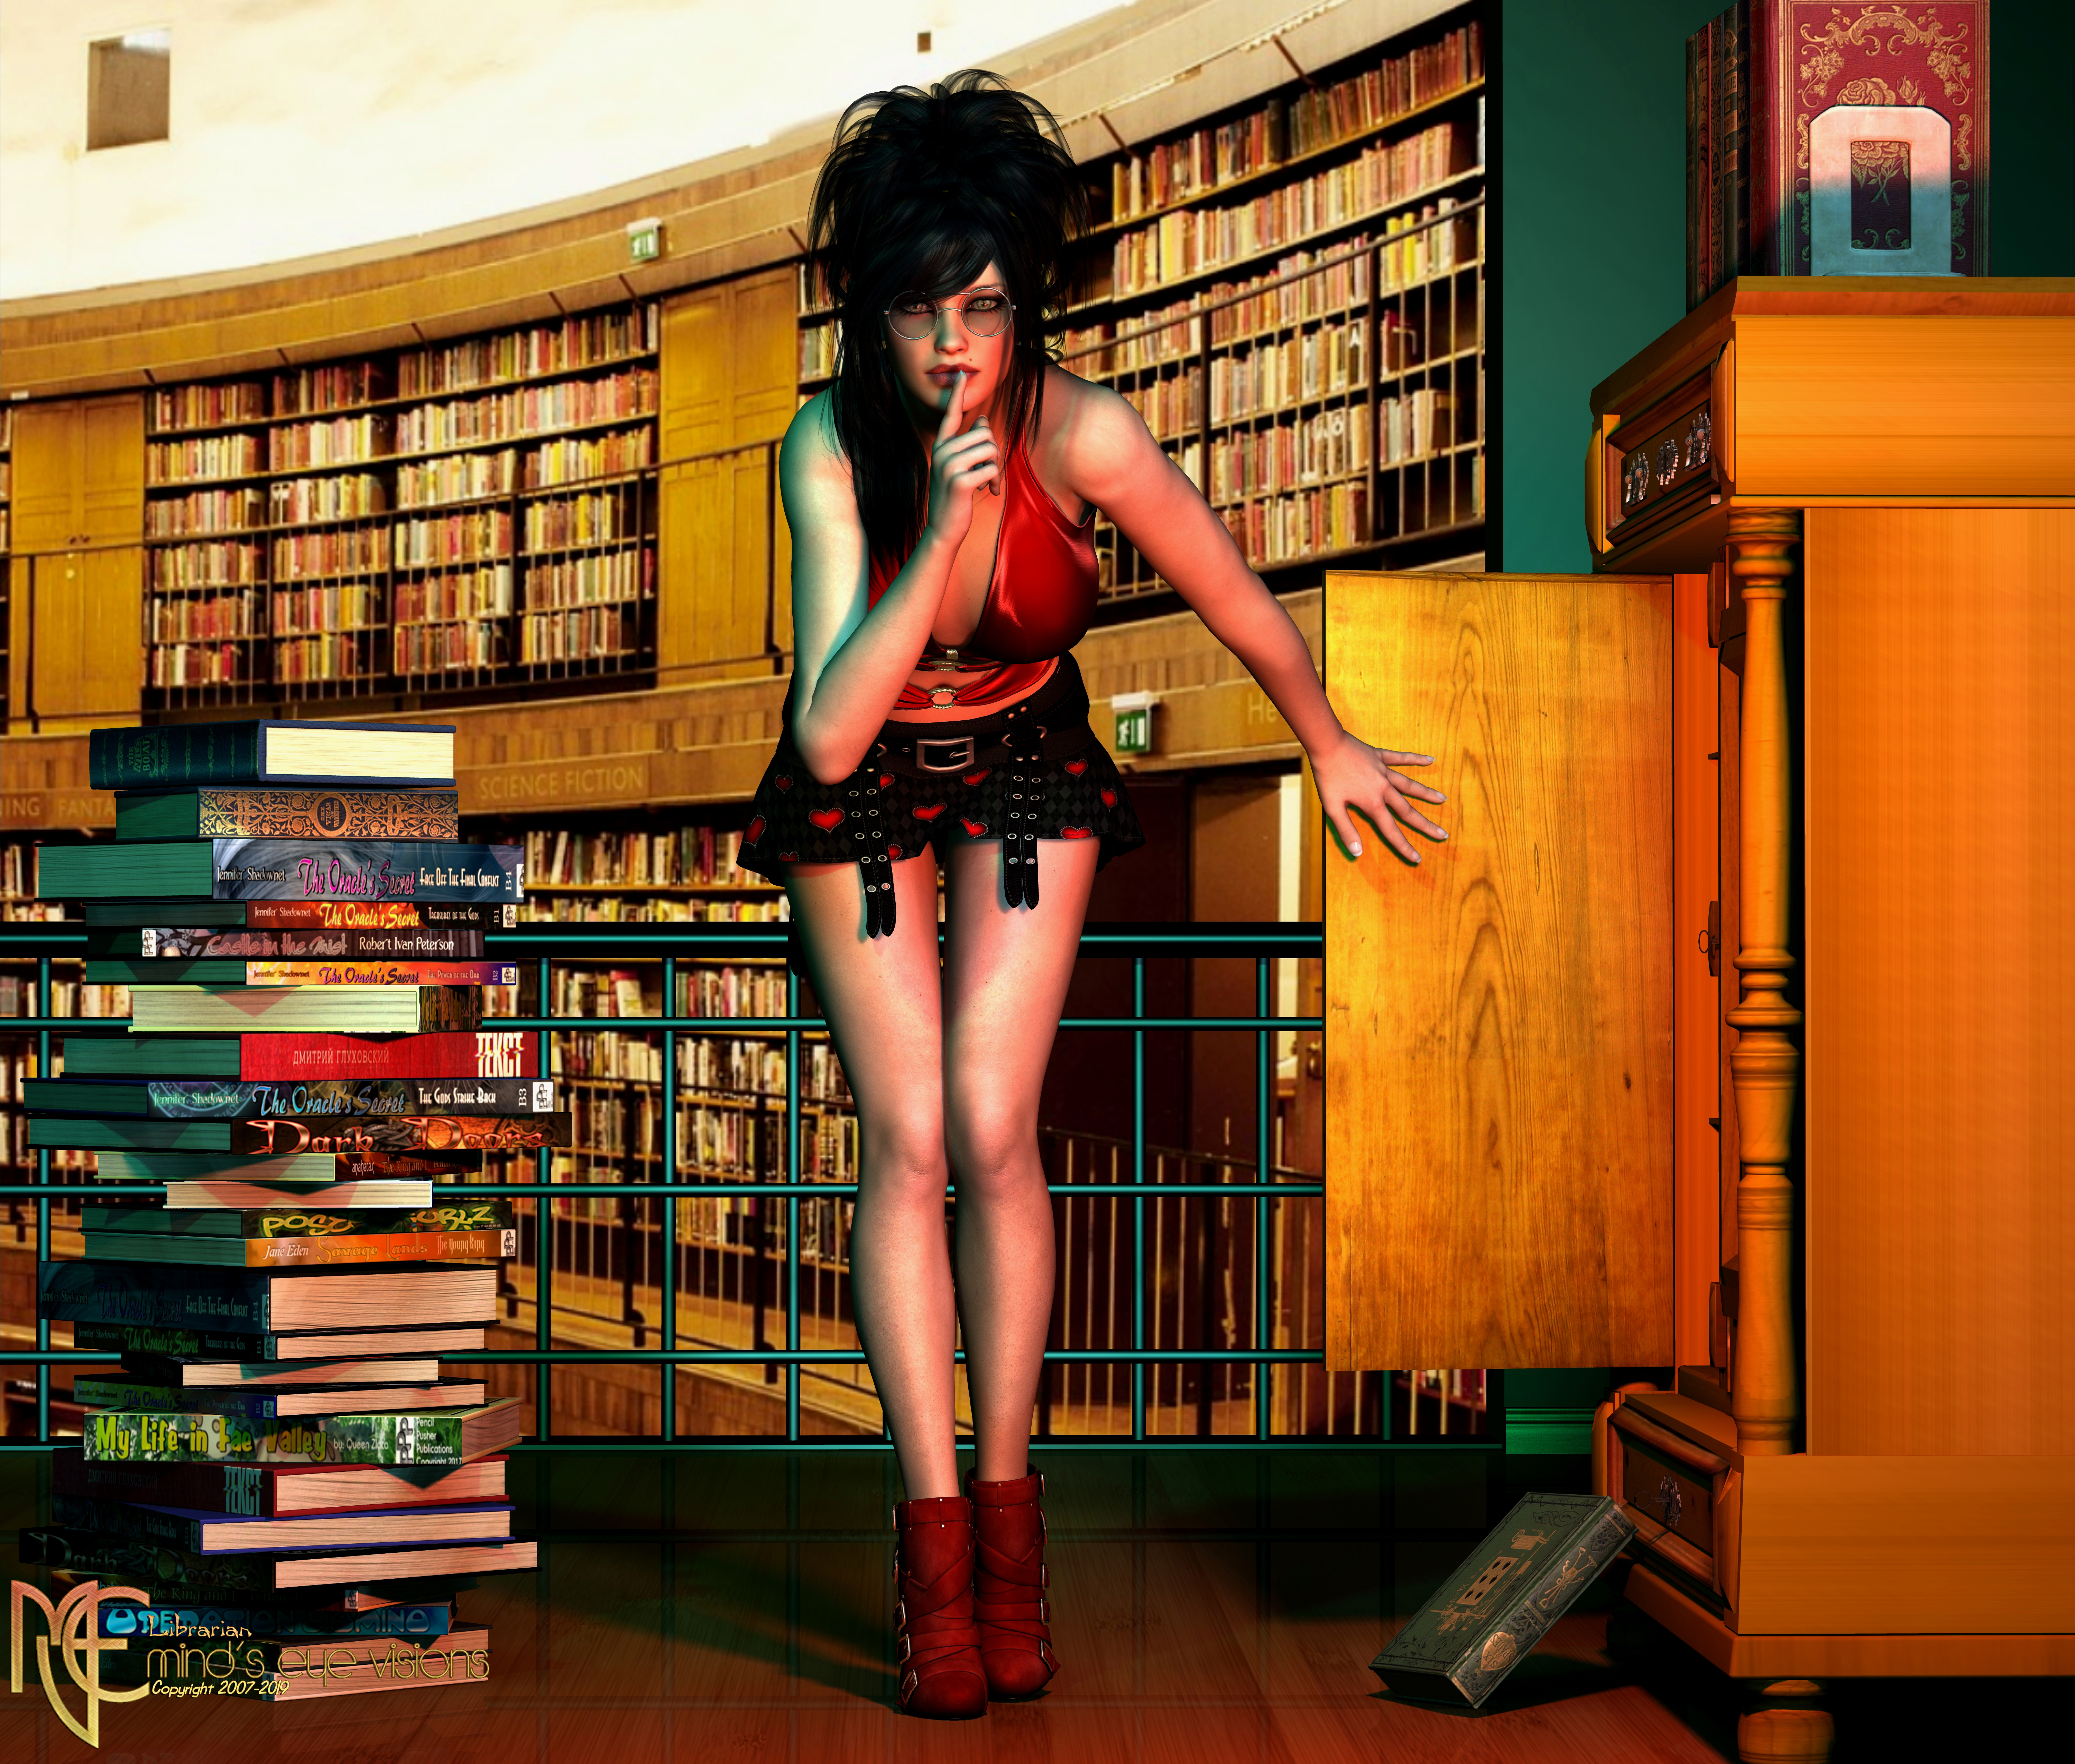 Librarian (Happy Humpday)